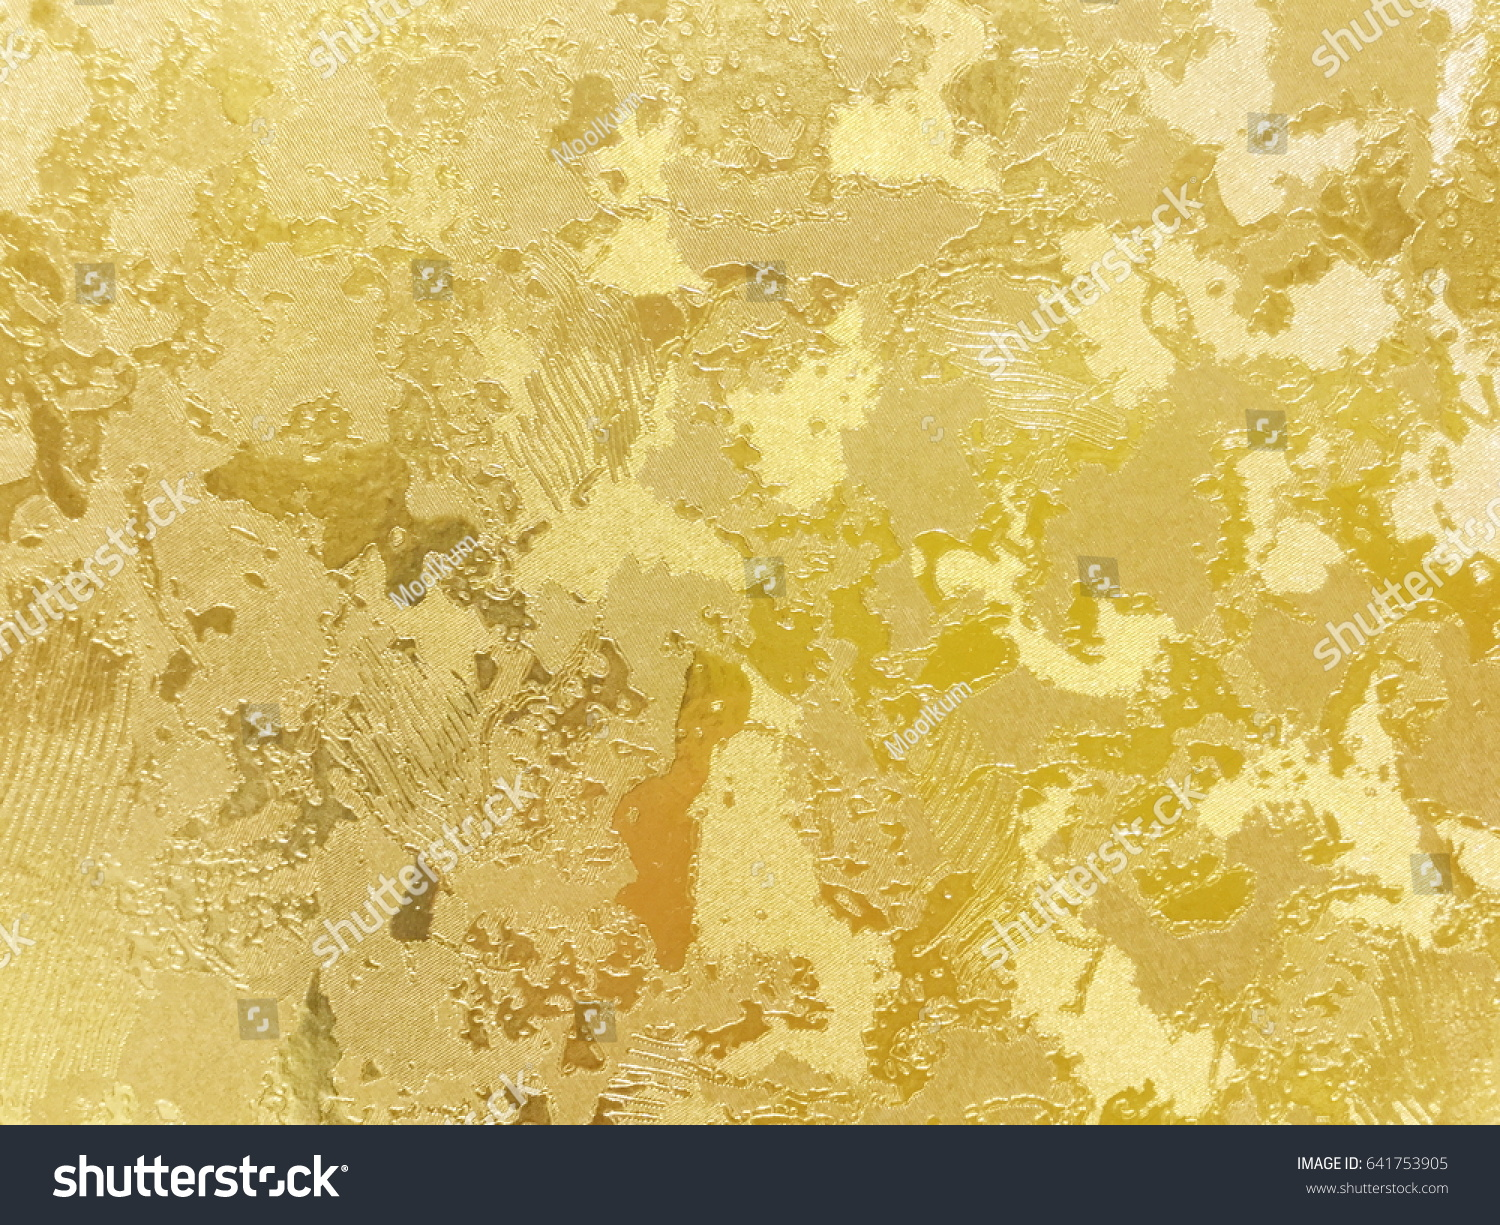 Abstract gold color painted on grunge rough surface of stucco ...